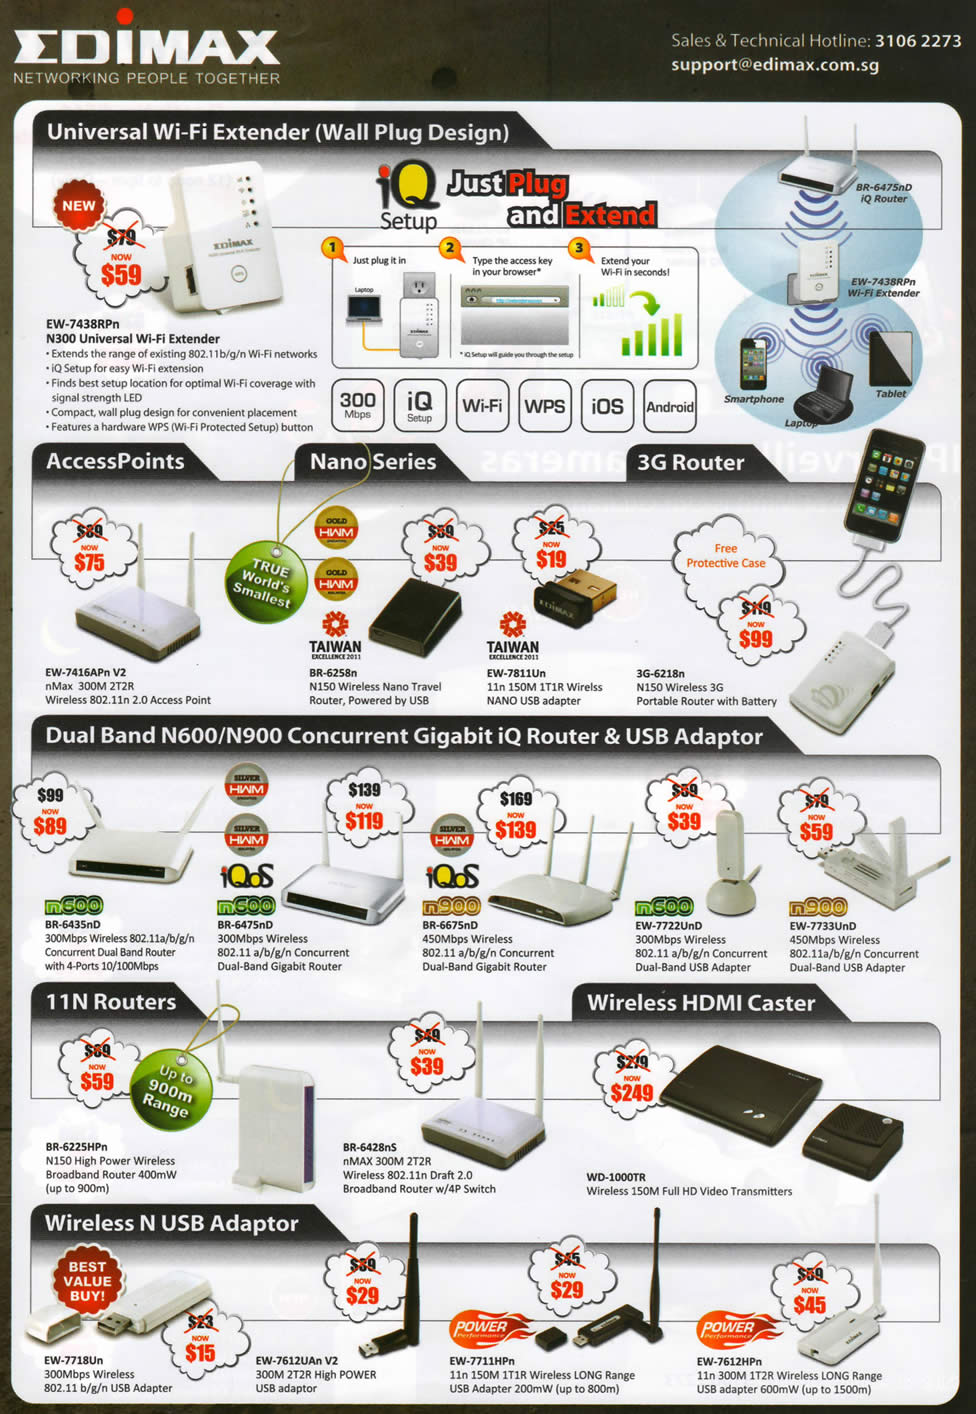 IT SHOW 2012 price list image brochure of Edimax Networking N300 Universal Extender, EW-7416APn V2 Router, Nano Travel Router 3G, USB Adapter, HDMI Caster, IQ Router